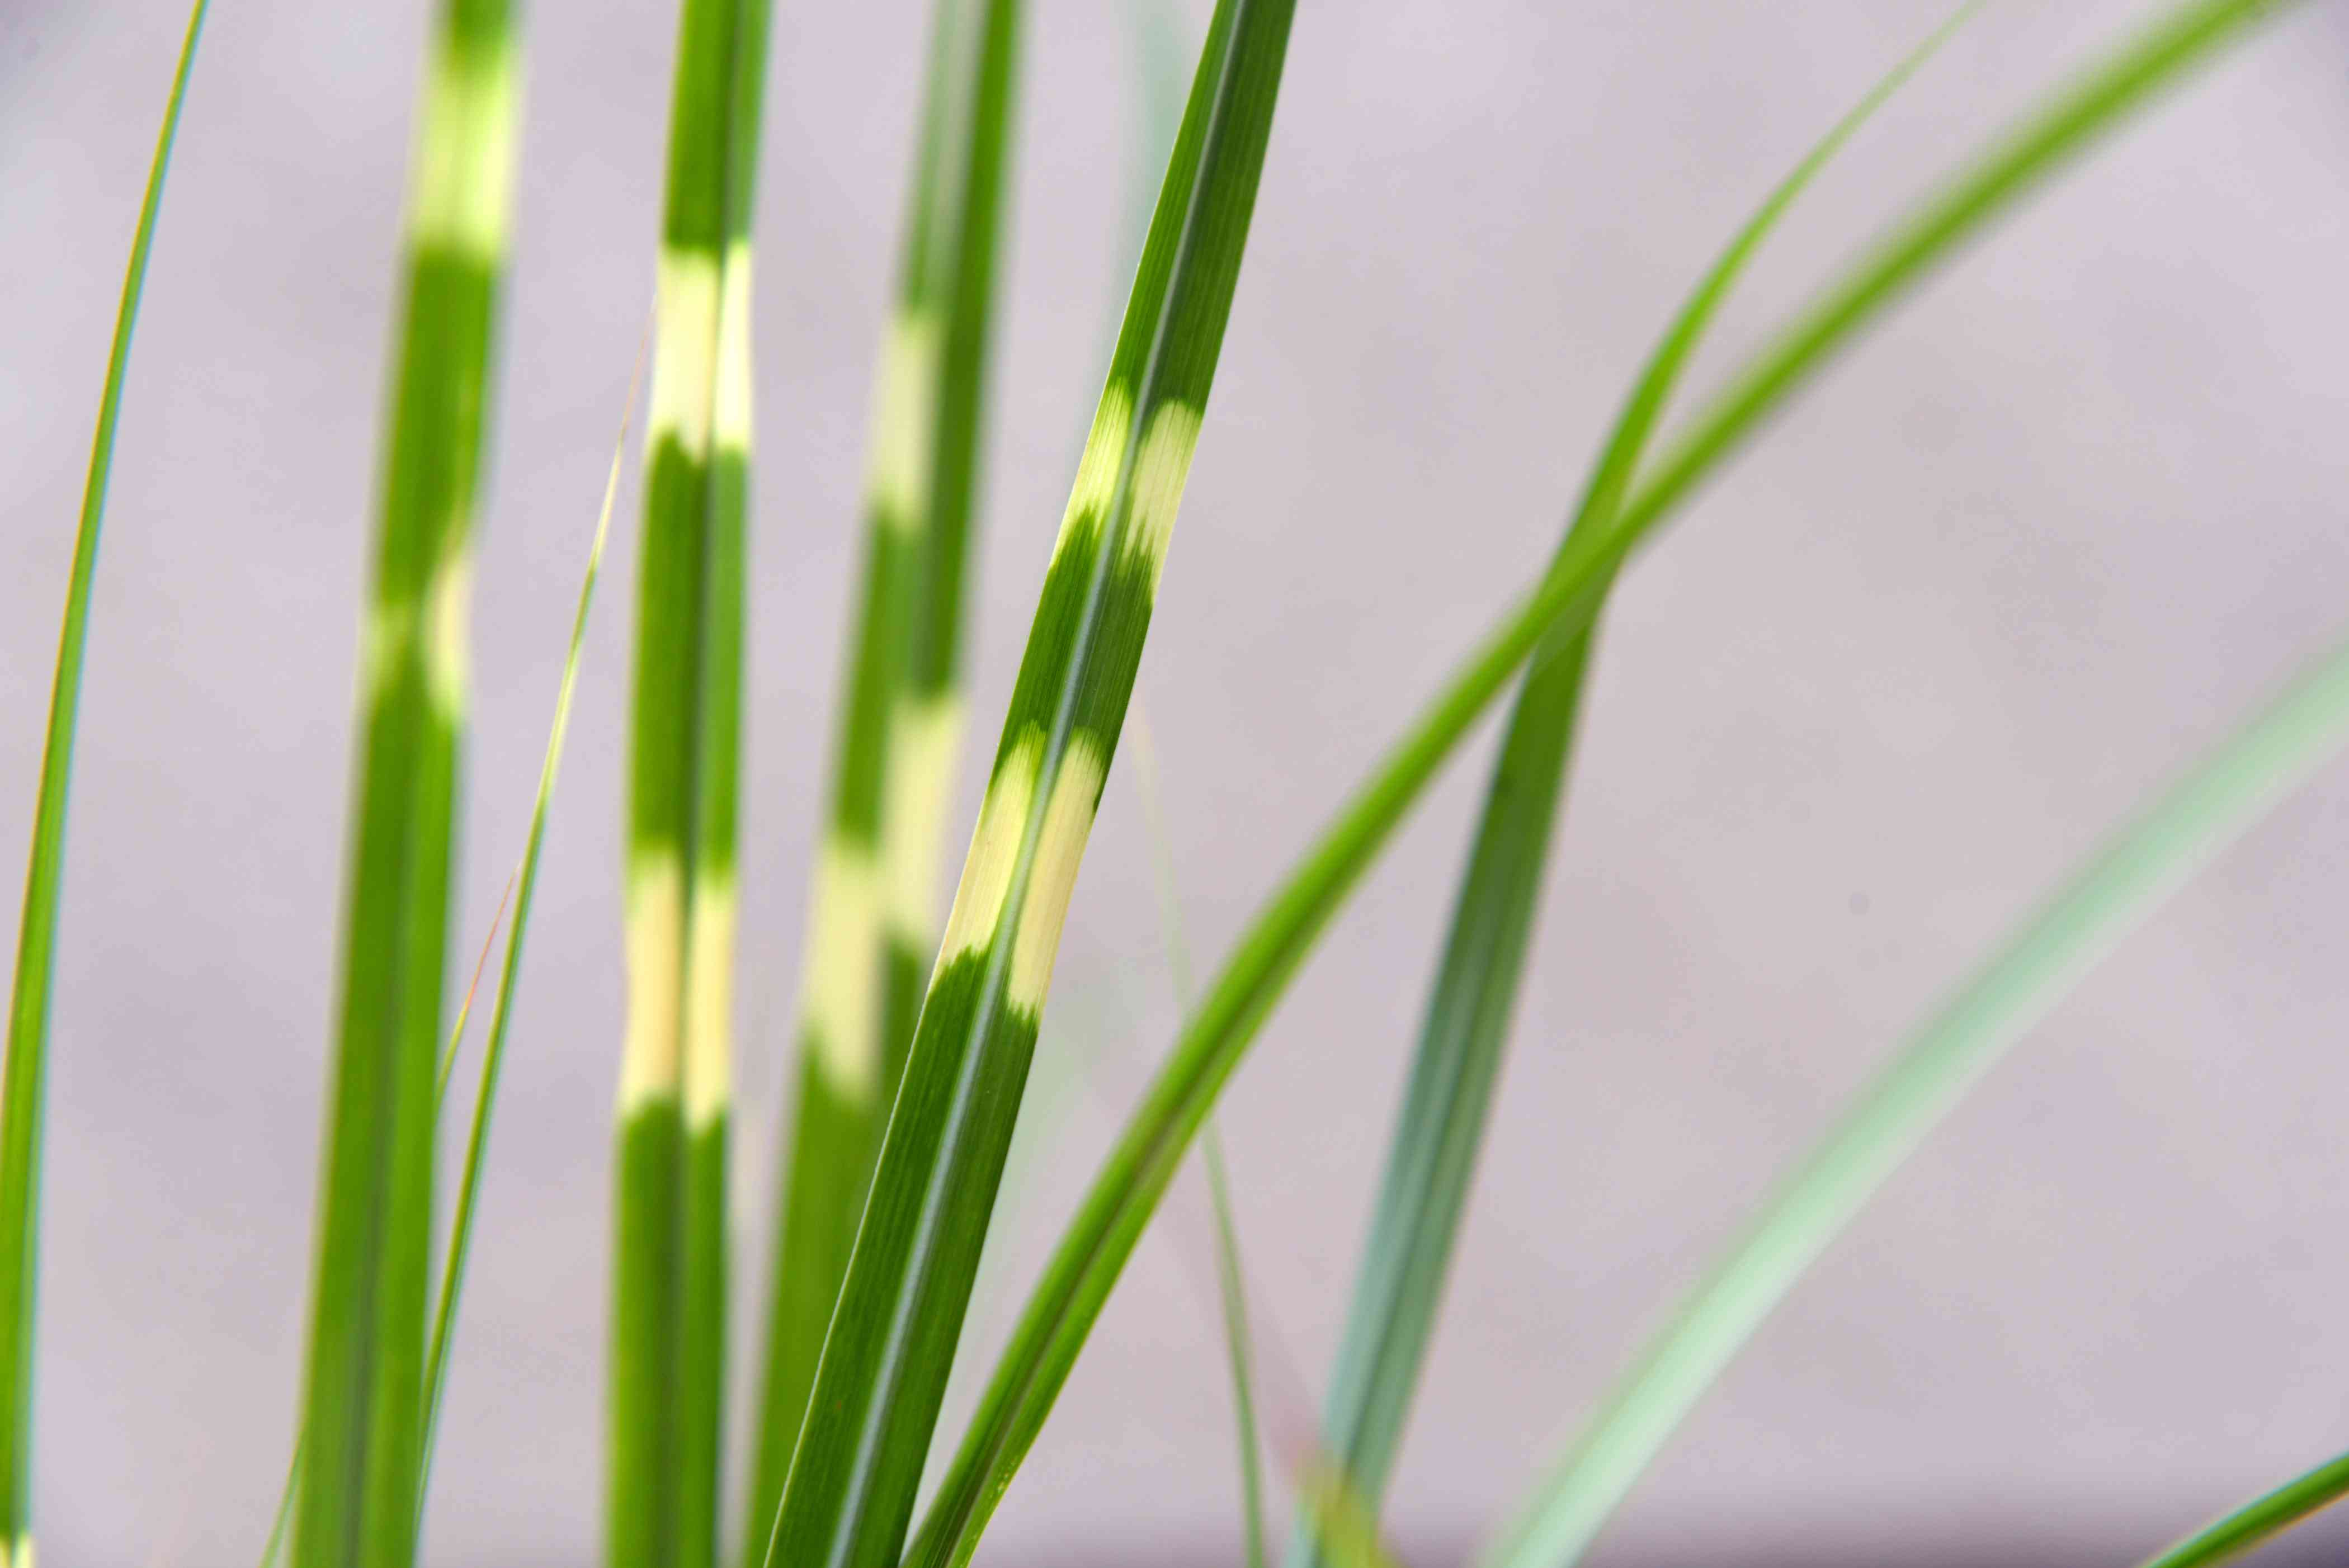 Zebra grass plant blades with variegated golden and green stripes closeup